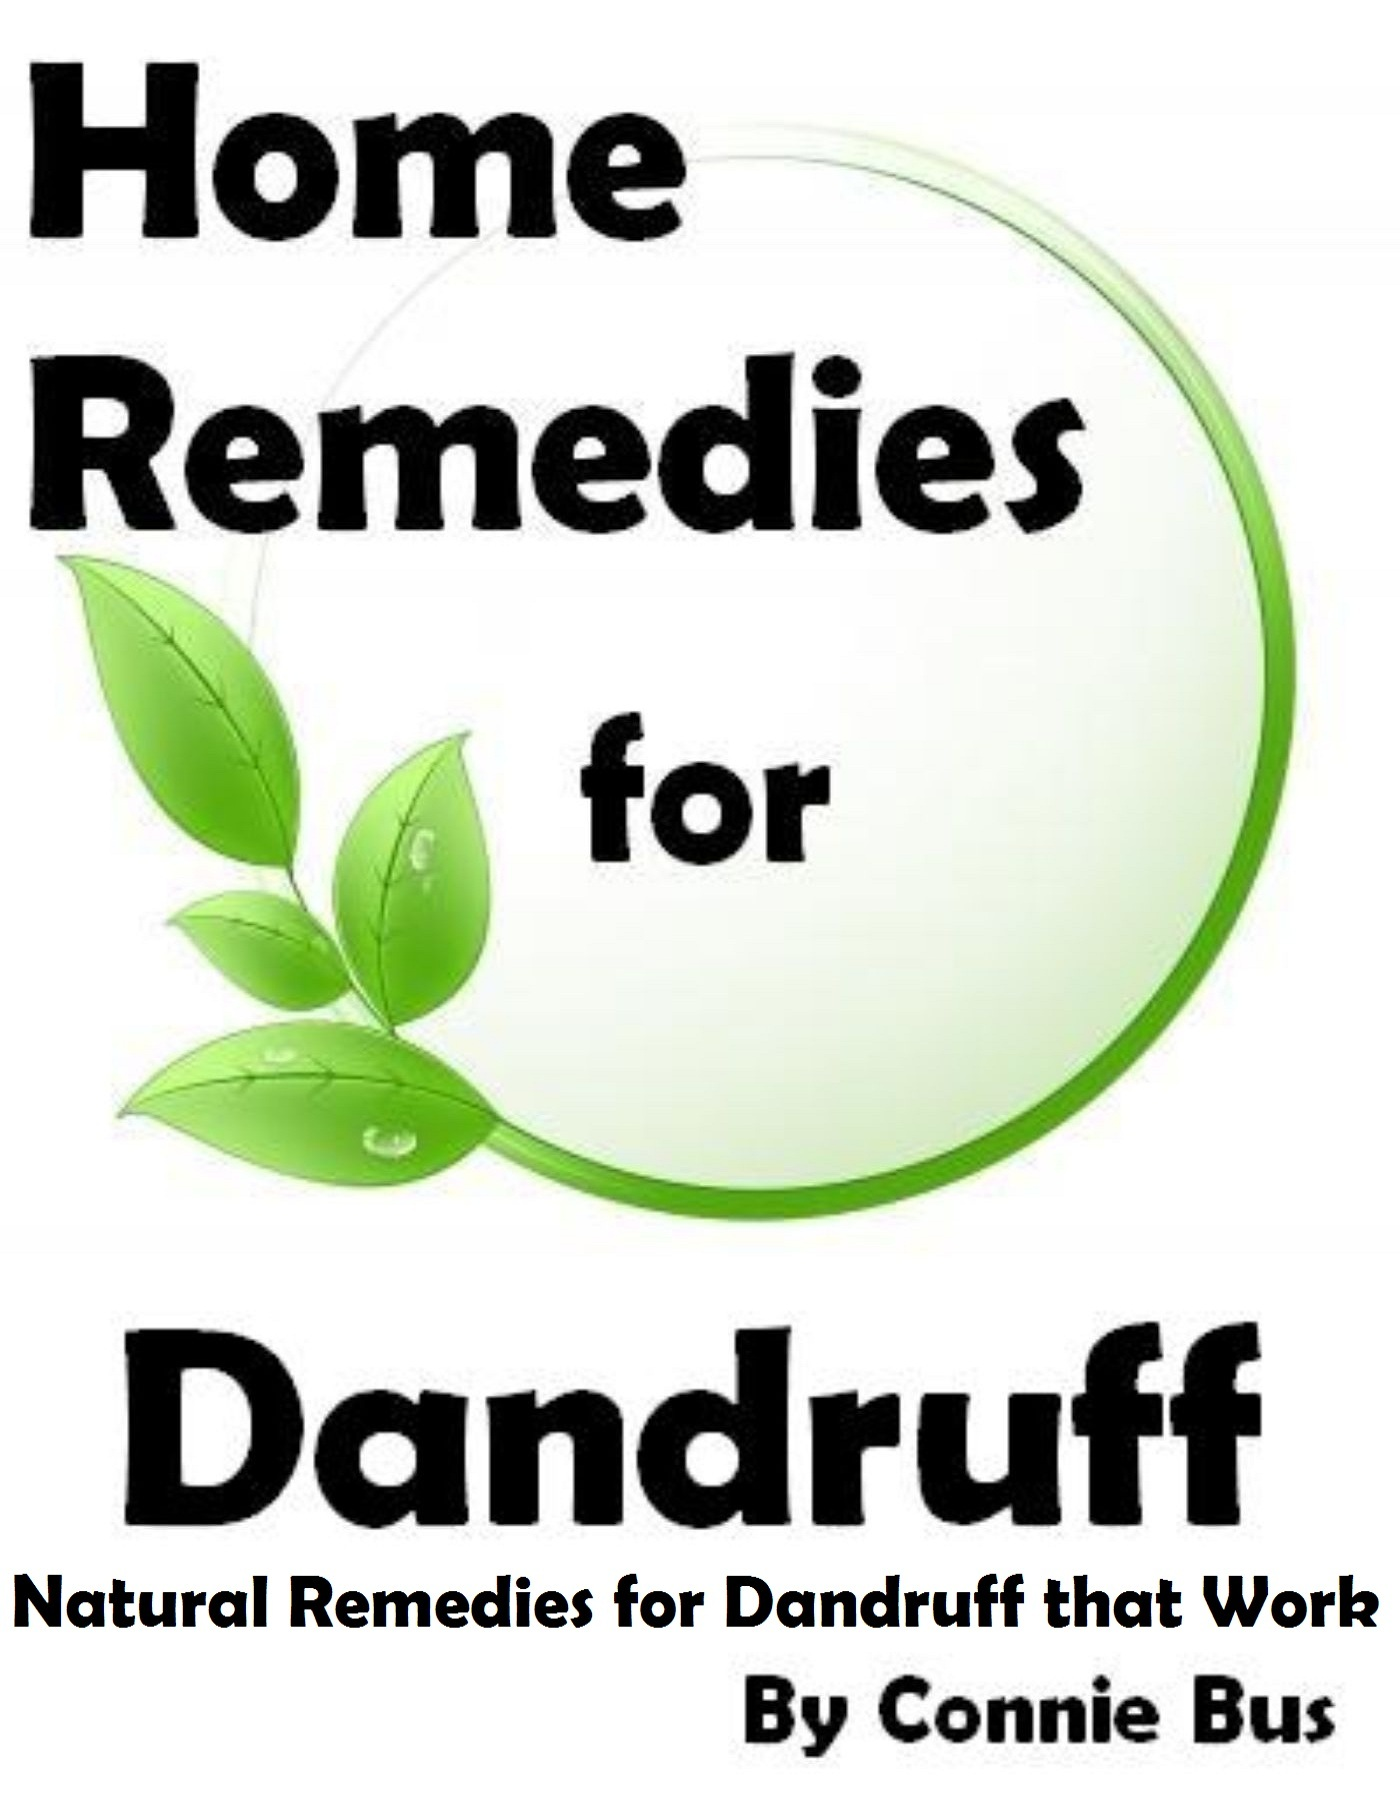 Home Remedies for Dandruff: Natural Dandruff Remedies that Work